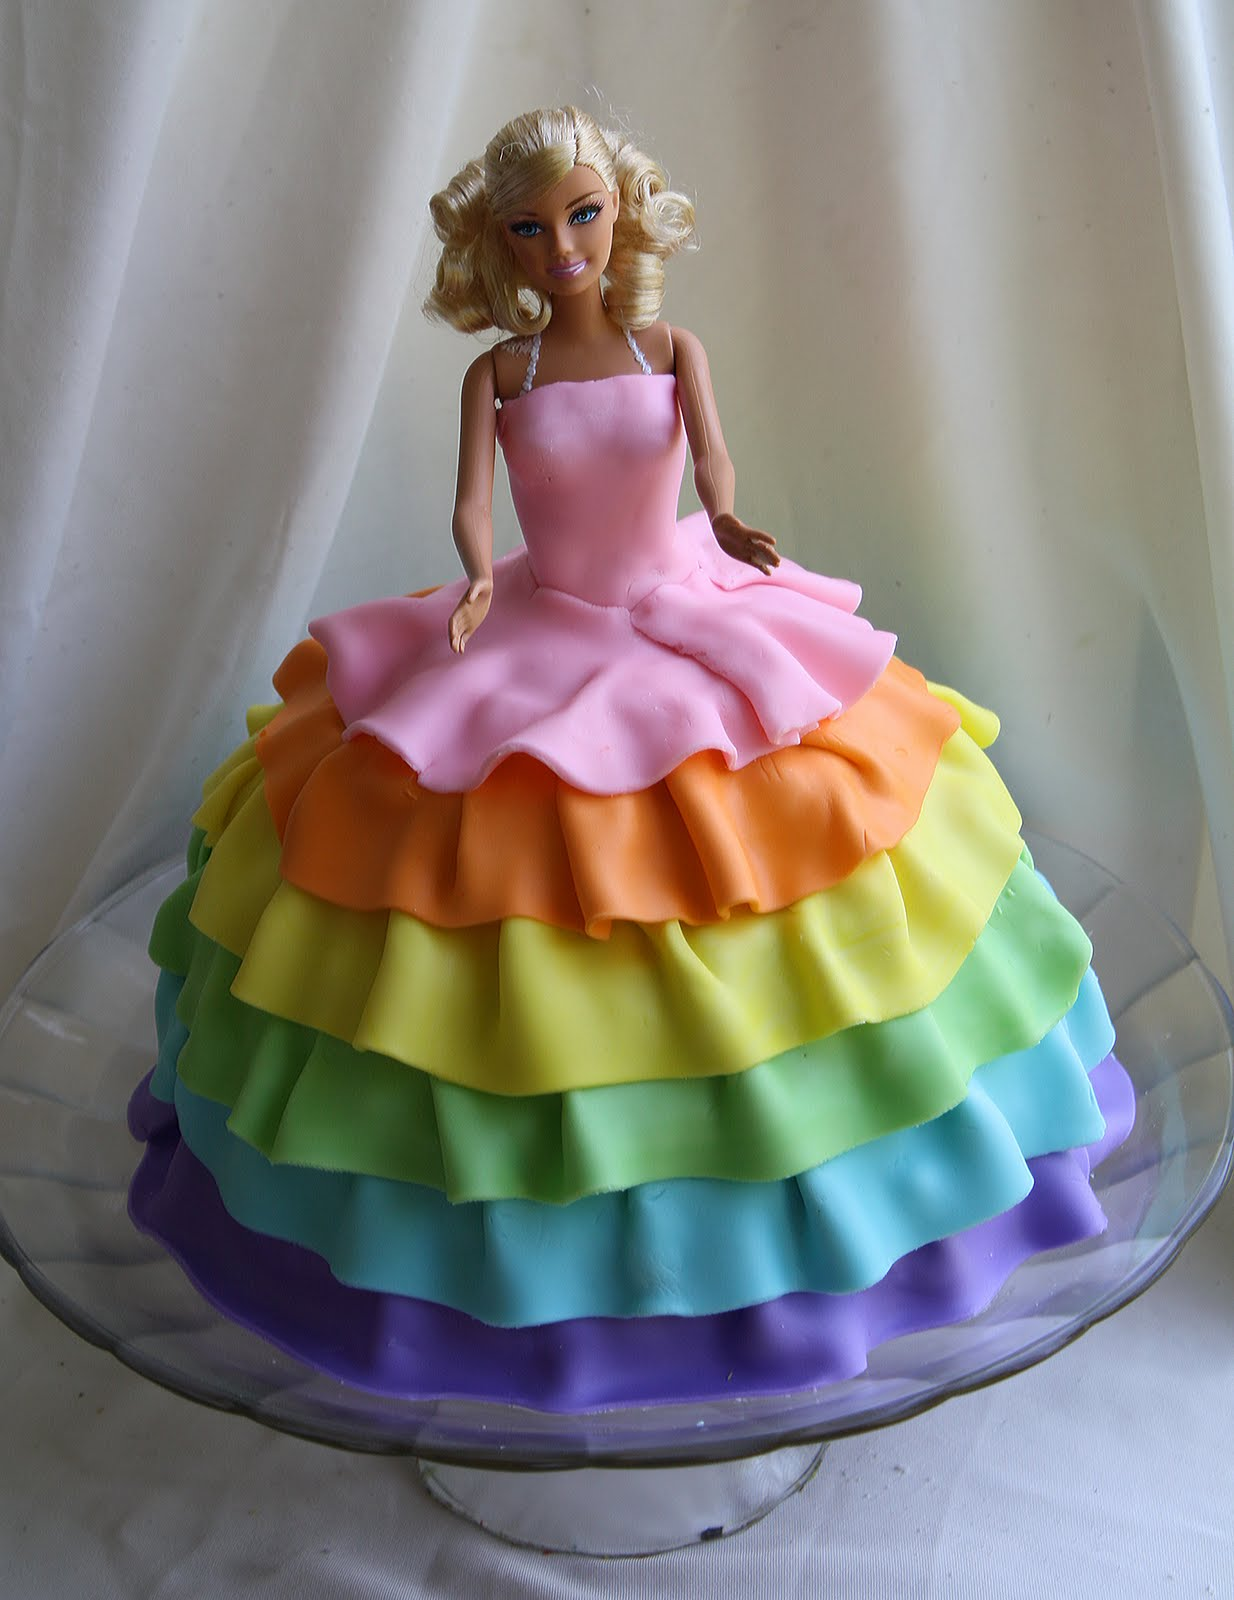 Images Of A Barbie Cake : Rainbow Barbie Cake